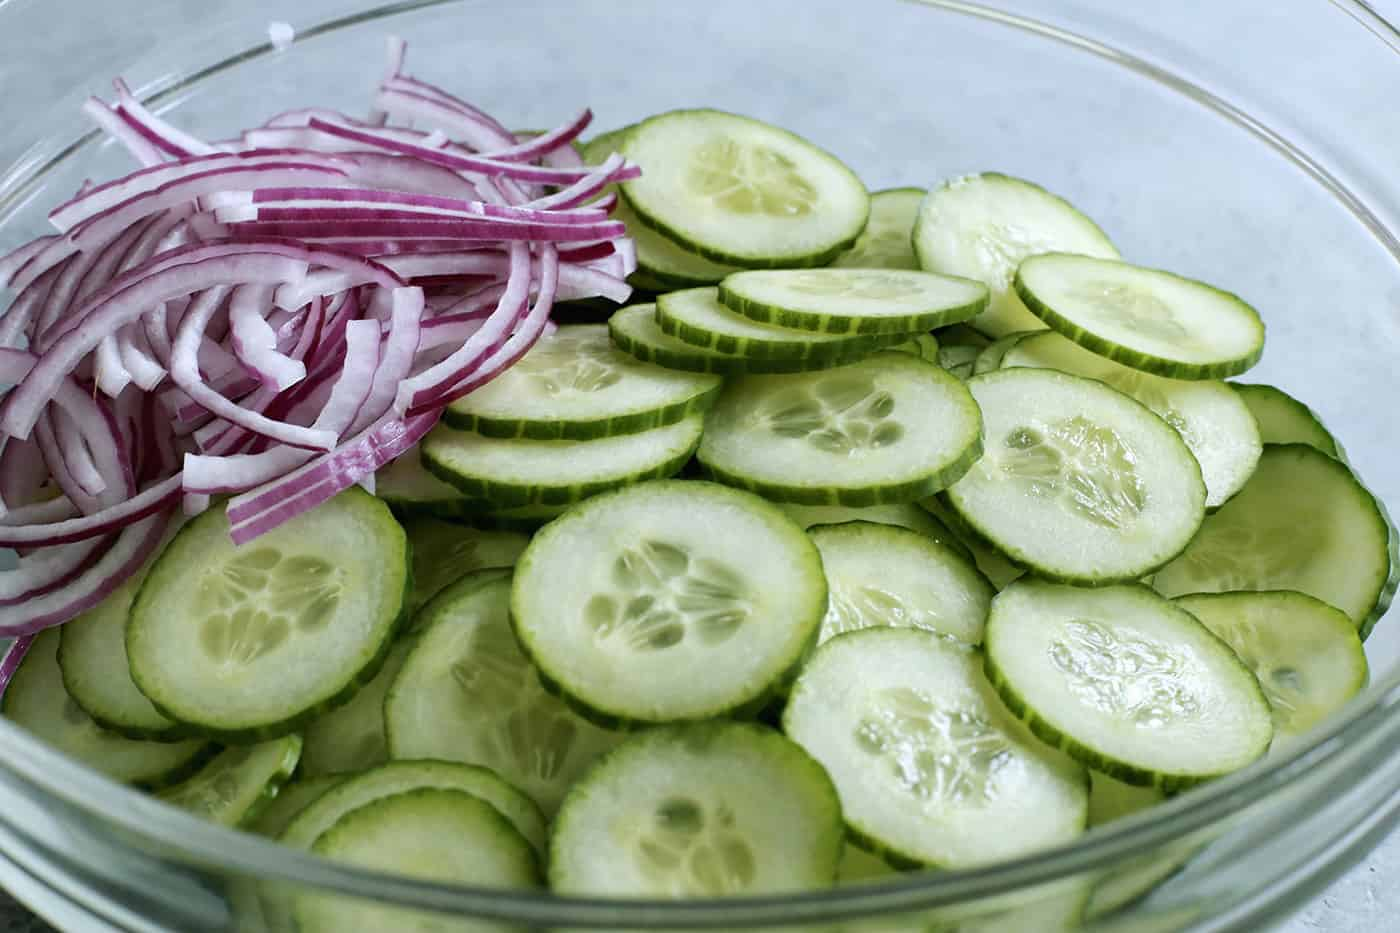 close-up photo of cucumber and red onion slices in a clear bowl